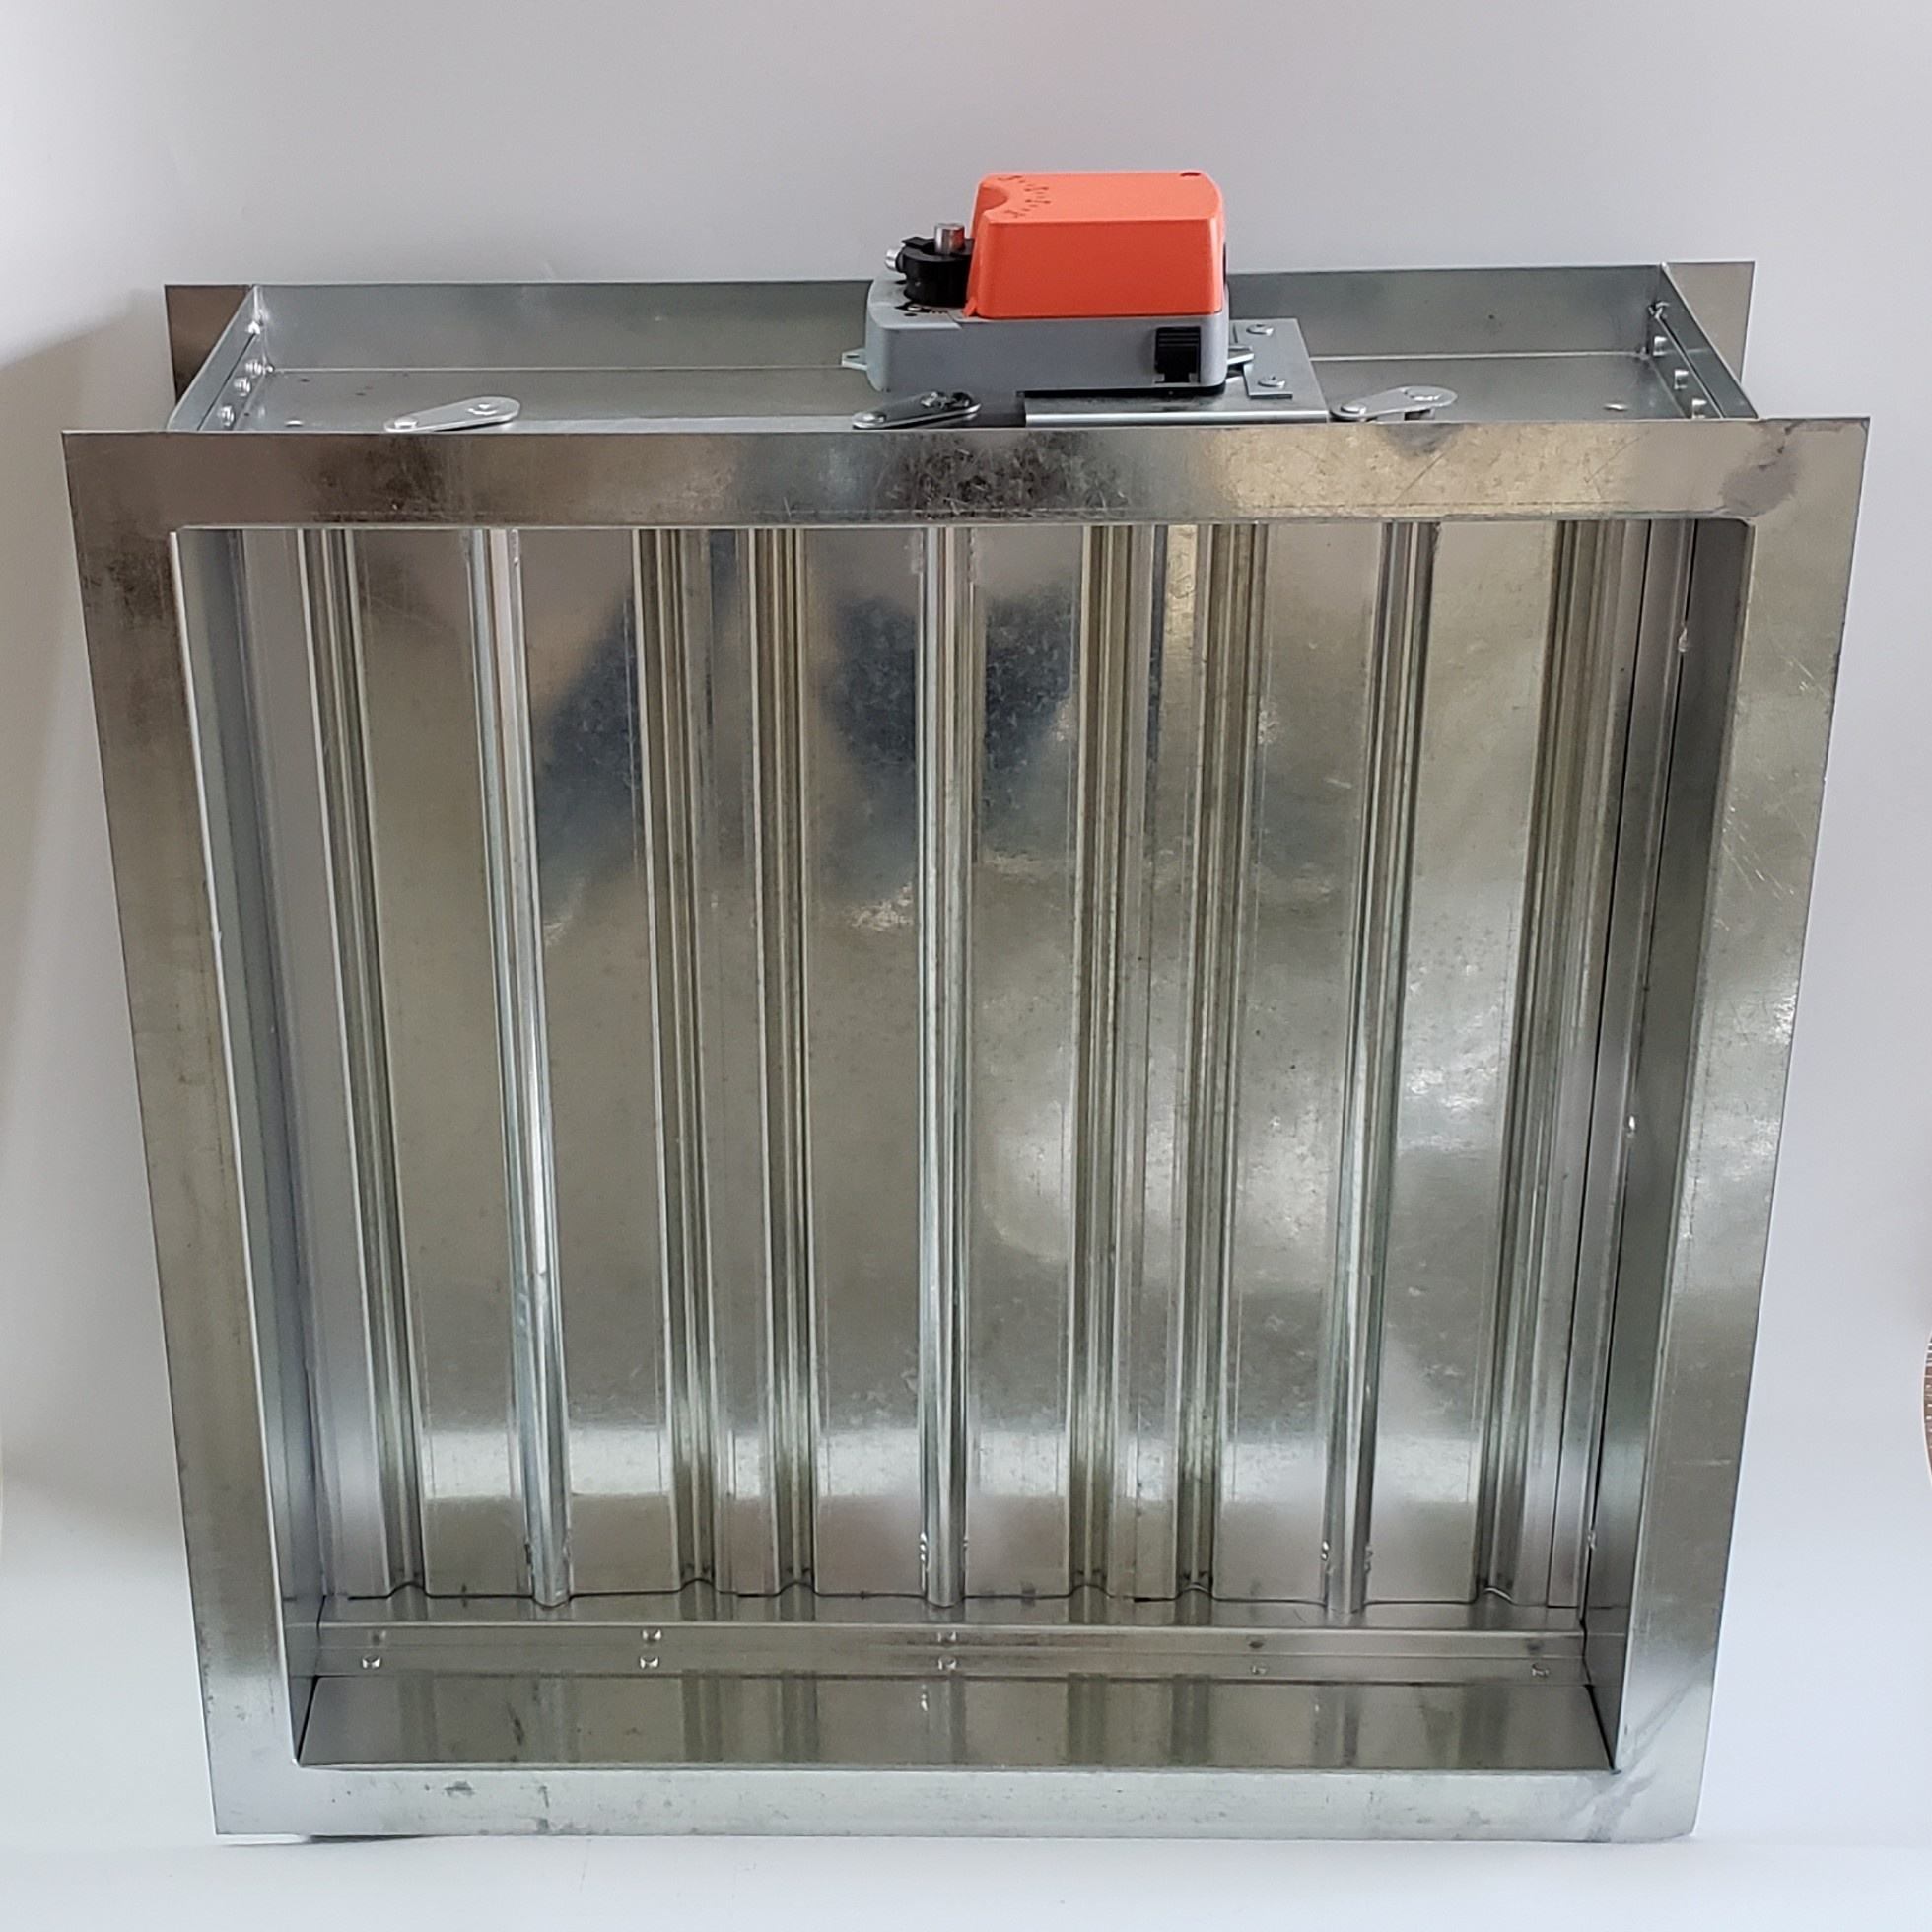 electric 220V motorized air Damper square air duct damper 24v Galvanized Square motor damper